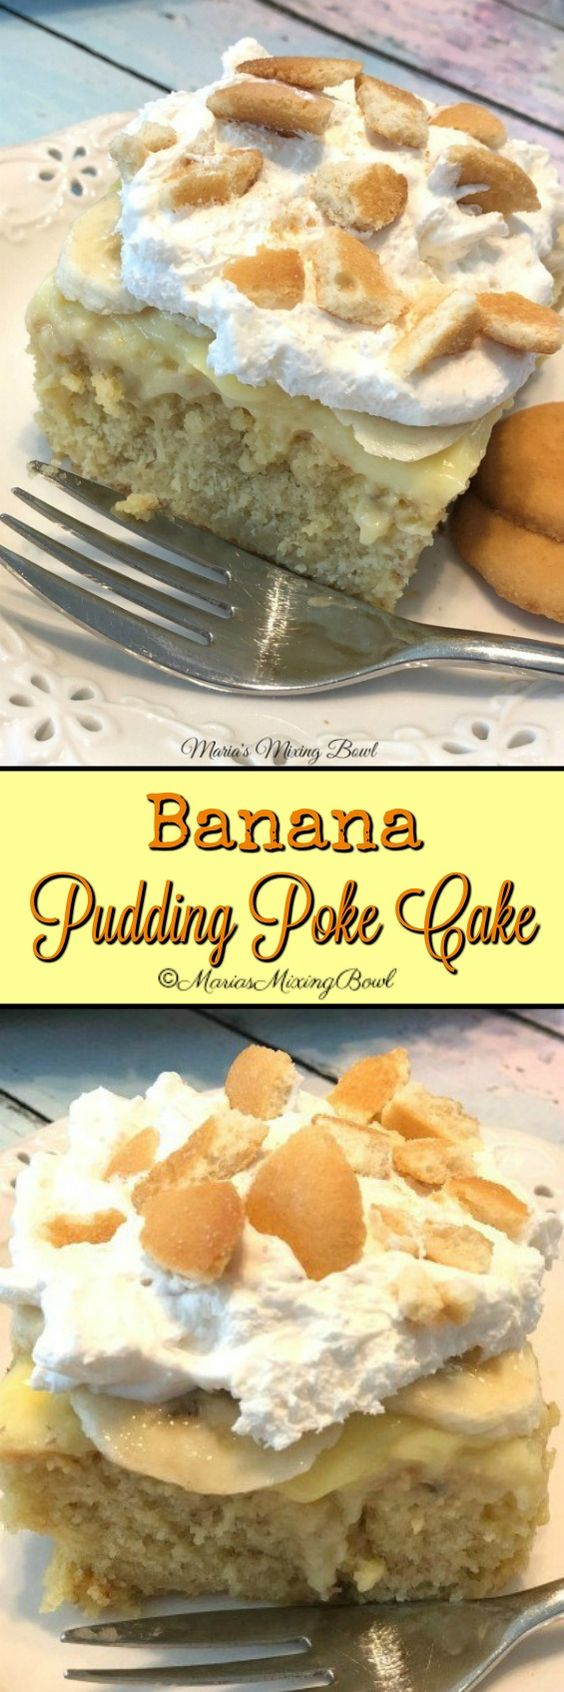 Banana Pudding Poke Cake Recipe -  Looking for the BEST banana pudding poke cake? Look no further. The flavors of banana cream pie come together in this easy and delicious poke cake!